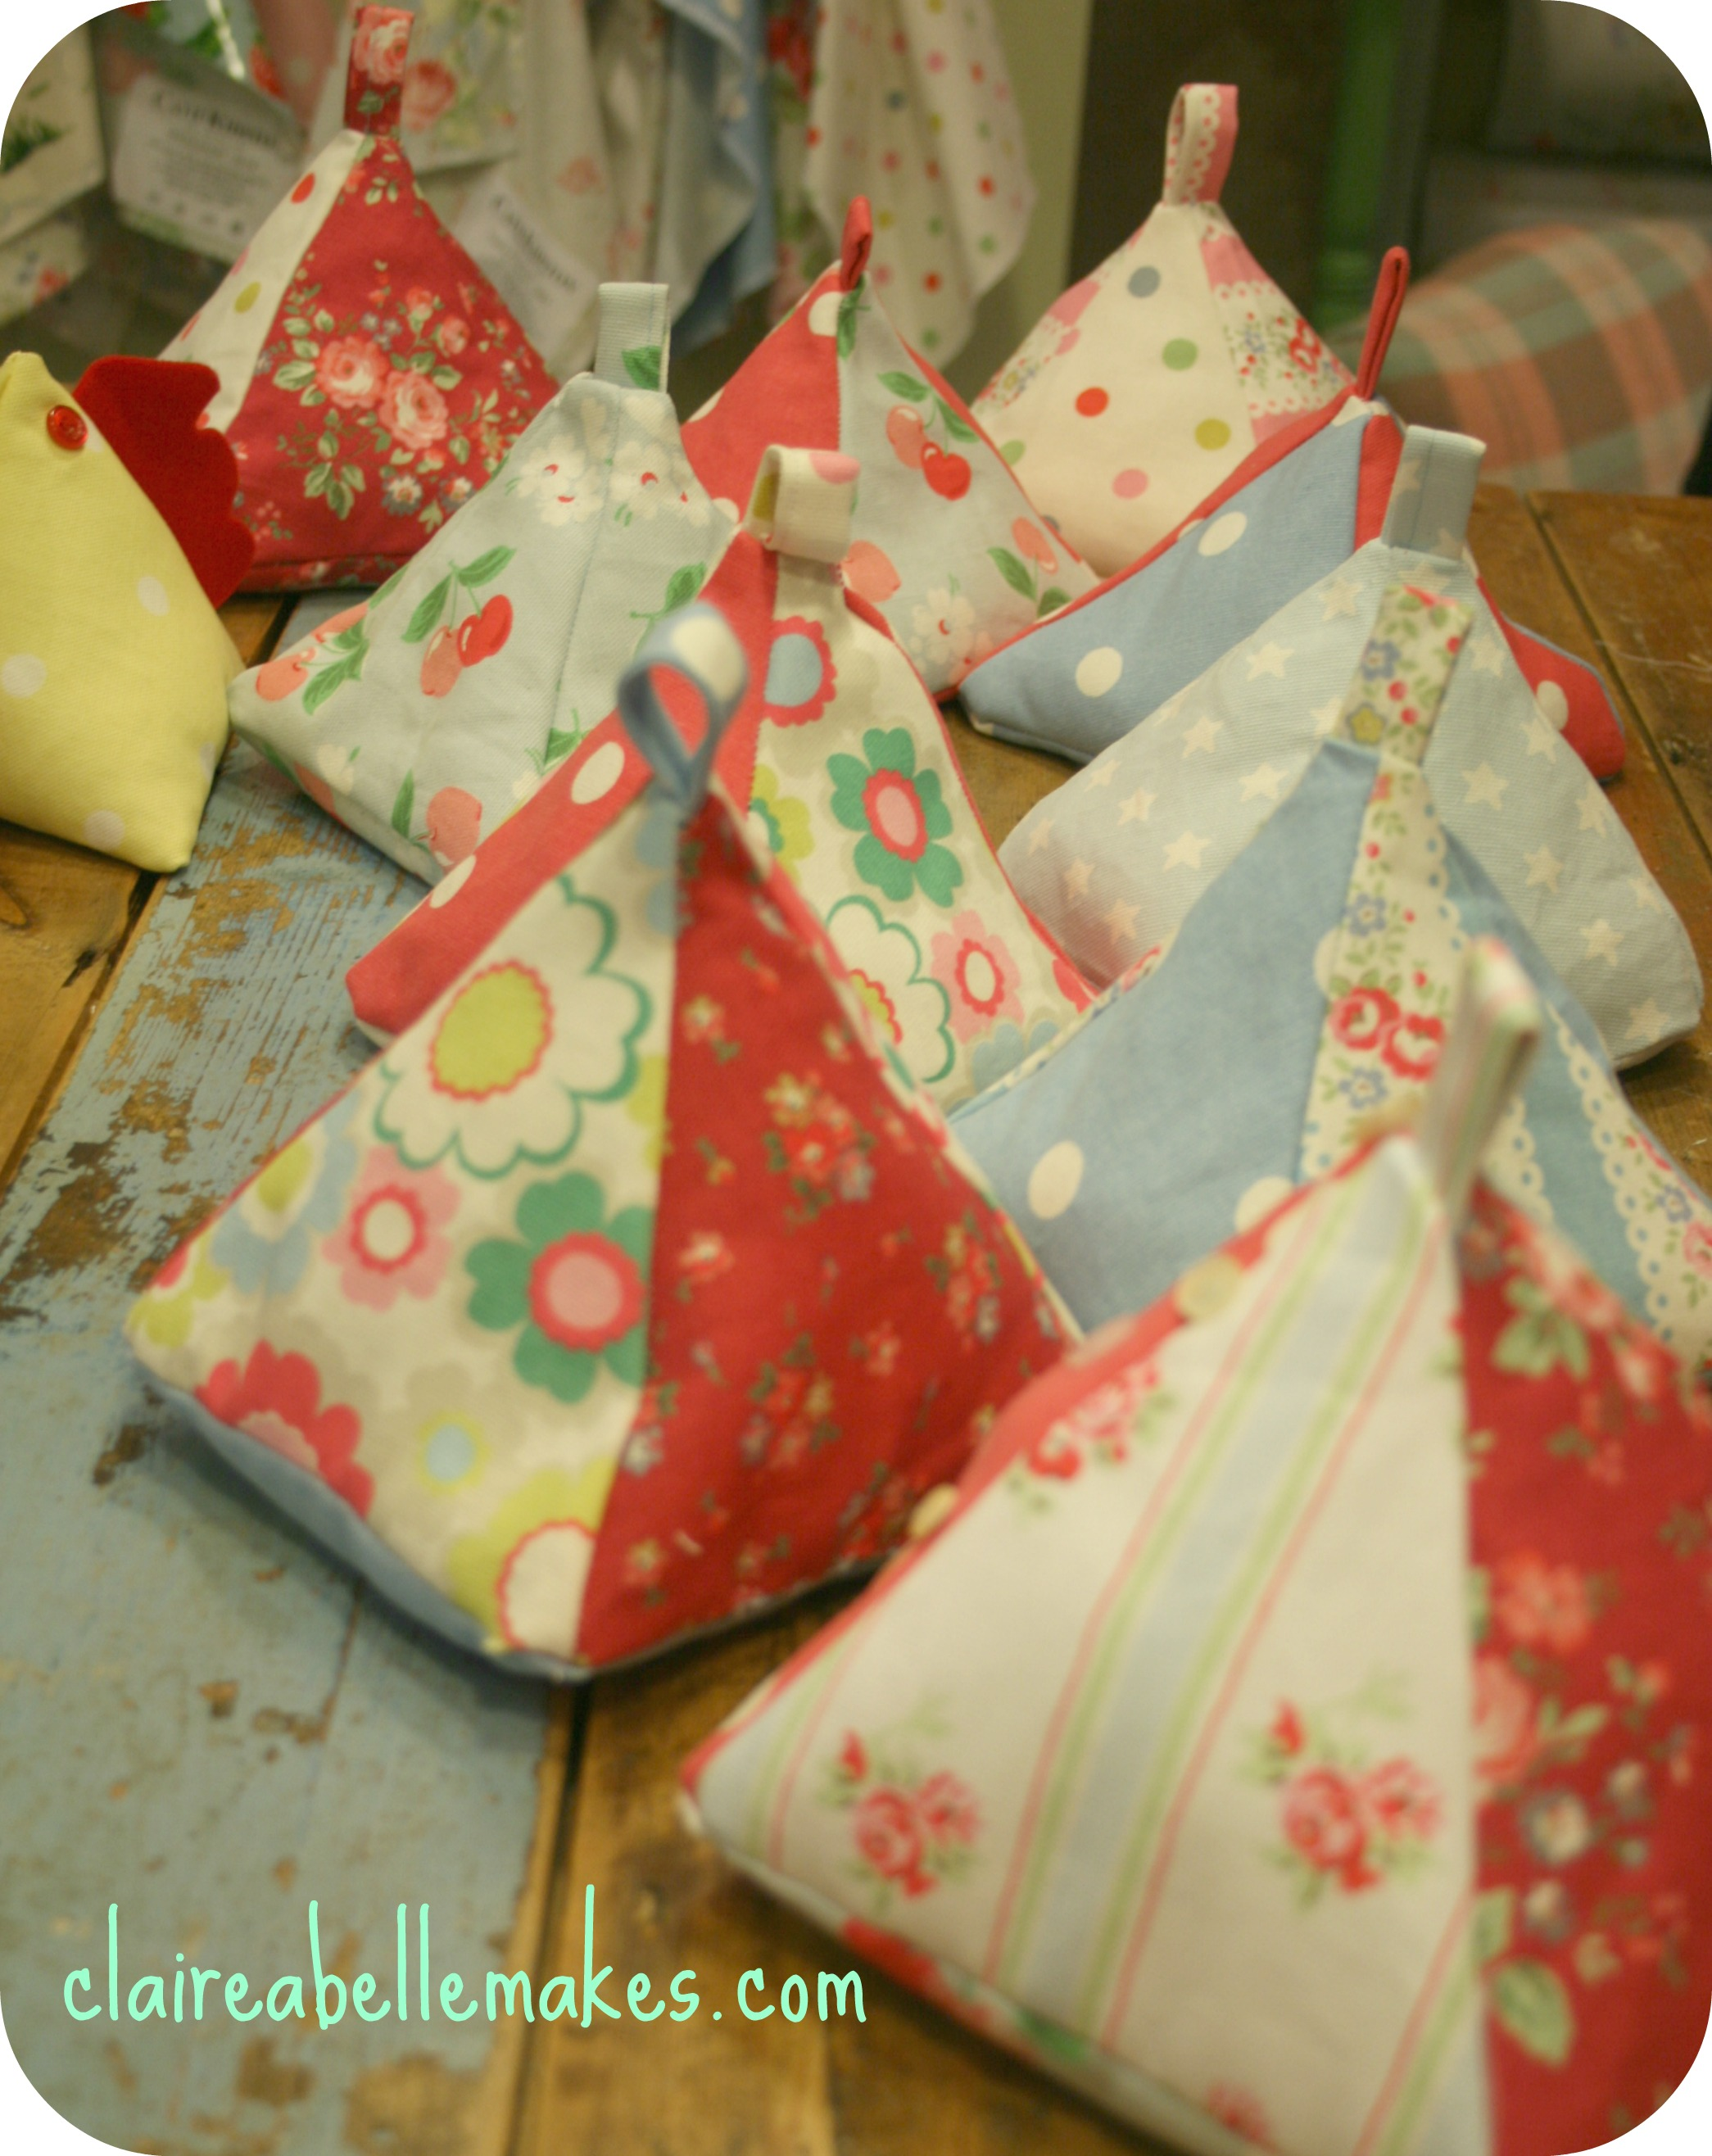 Cath Kidston Fabric Doorstop on claireabellemakes